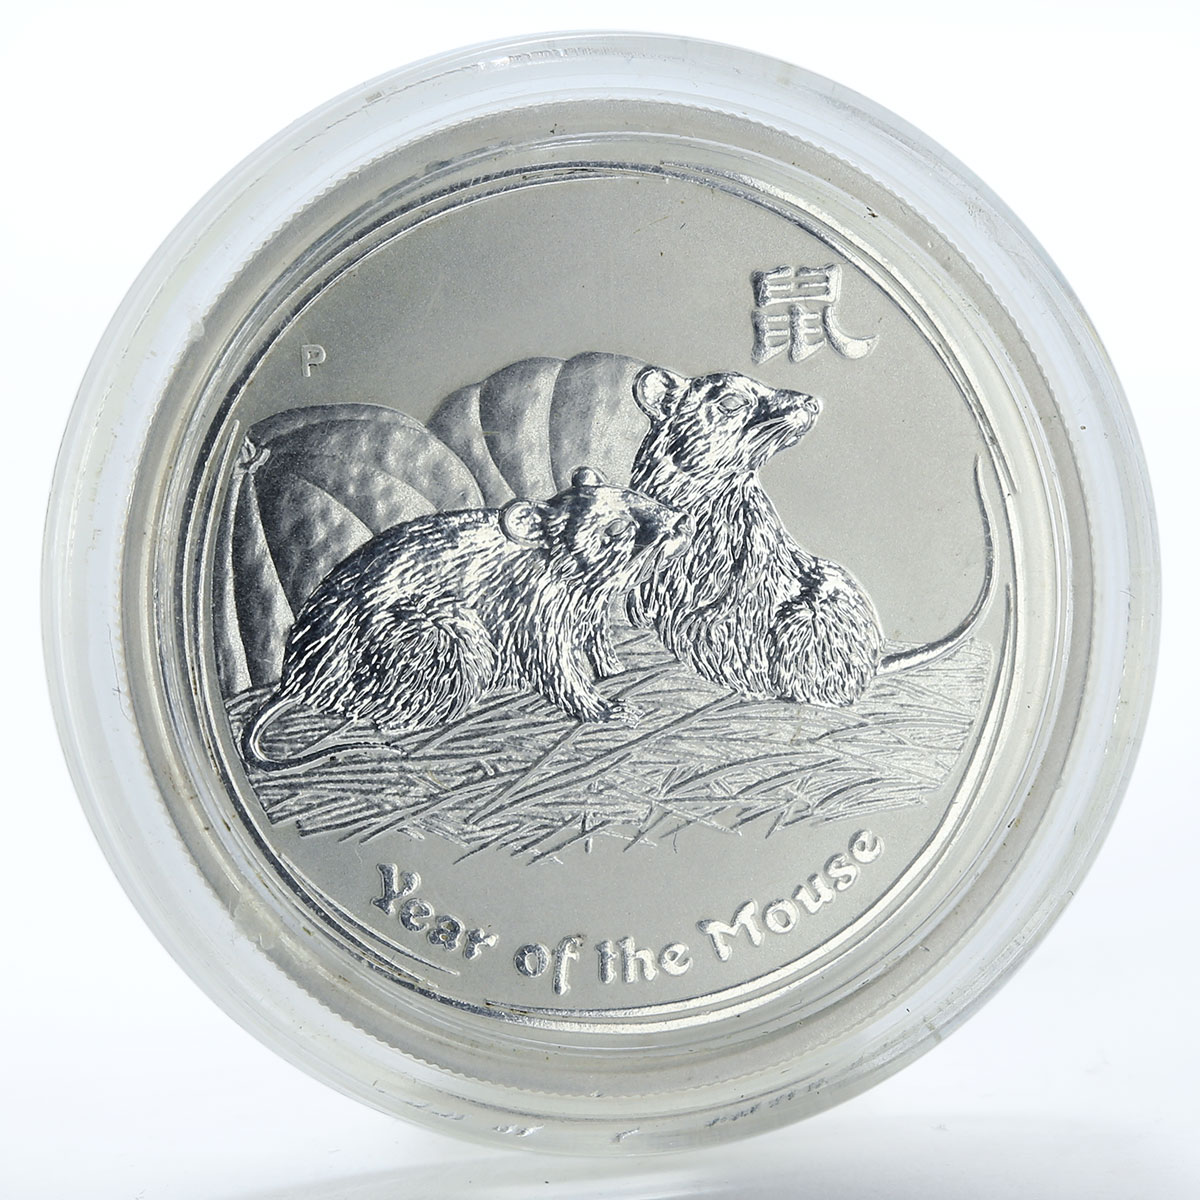 Australia 50 cents Year of the Mouse Lunar Series II silver coin 1/2 oz 2008